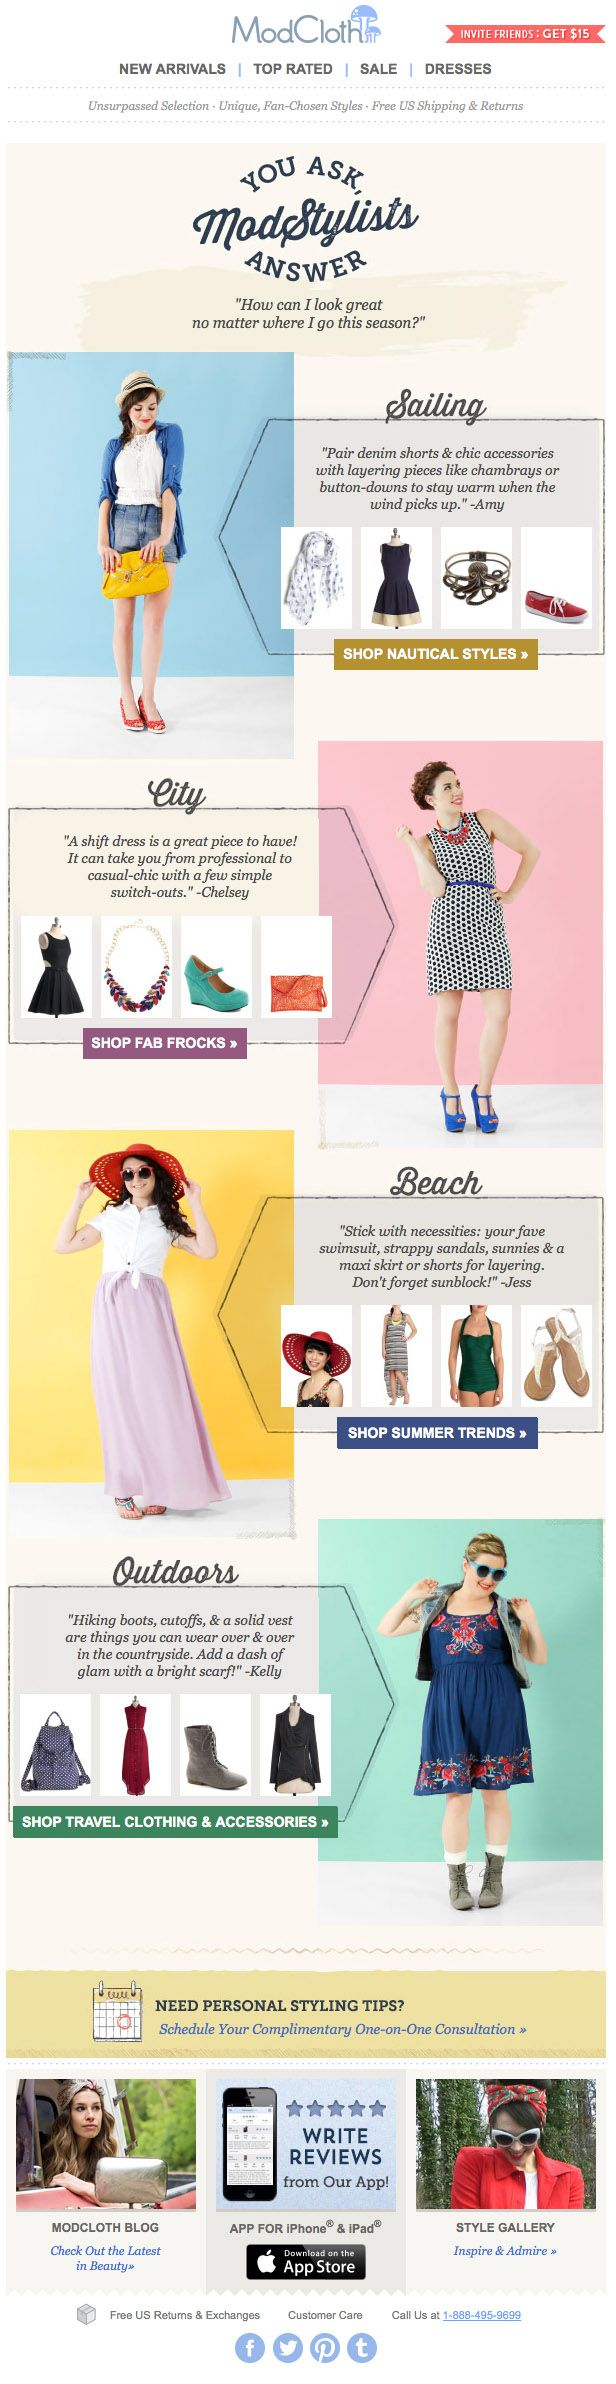 ModCloth : Built Looks; stylists help